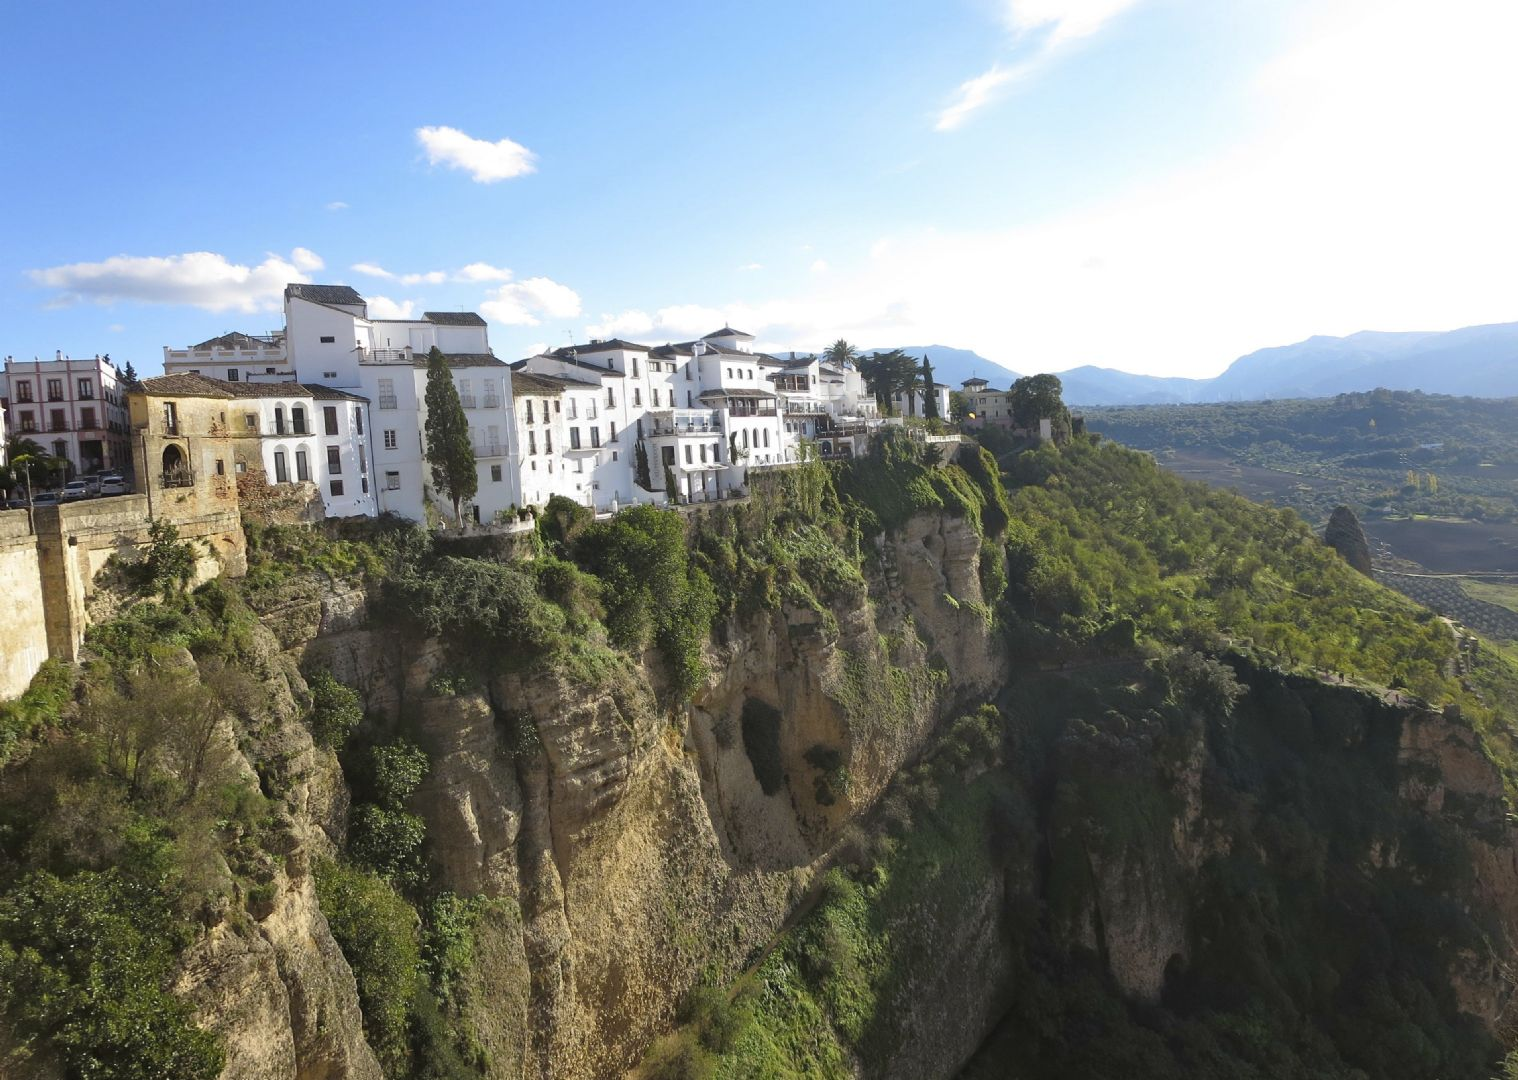 spanishroadcycling4.jpg - Southern Spain - Roads of Ronda - Self-Guided Road Cycling Holiday - Road Cycling